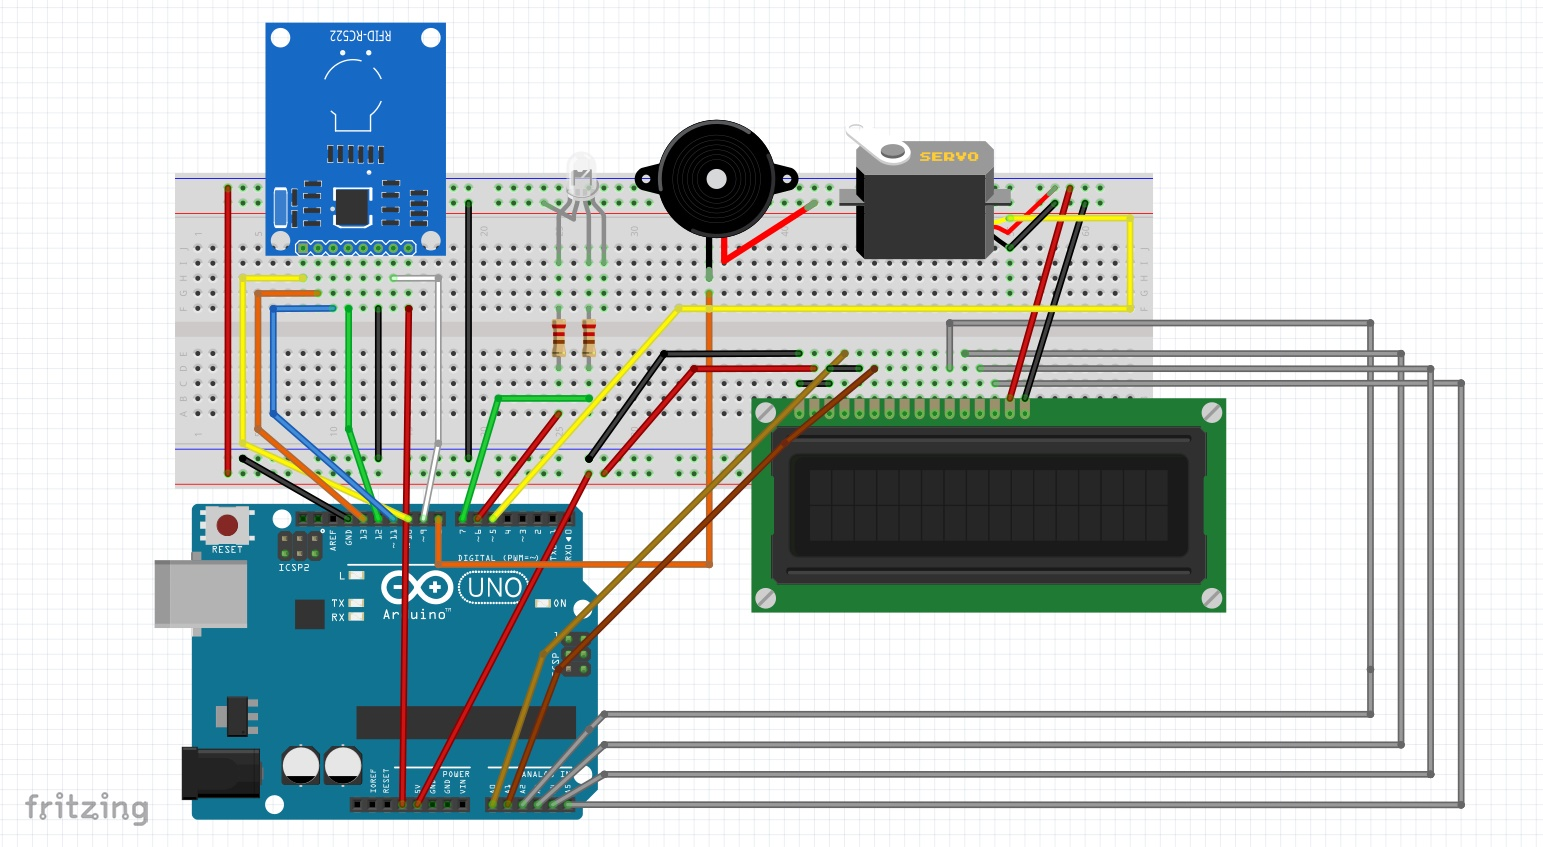 Rfid Based Automatic Door System Embedded Systems Blog Pic Microcontroller Electronic Lock Management Bread Board